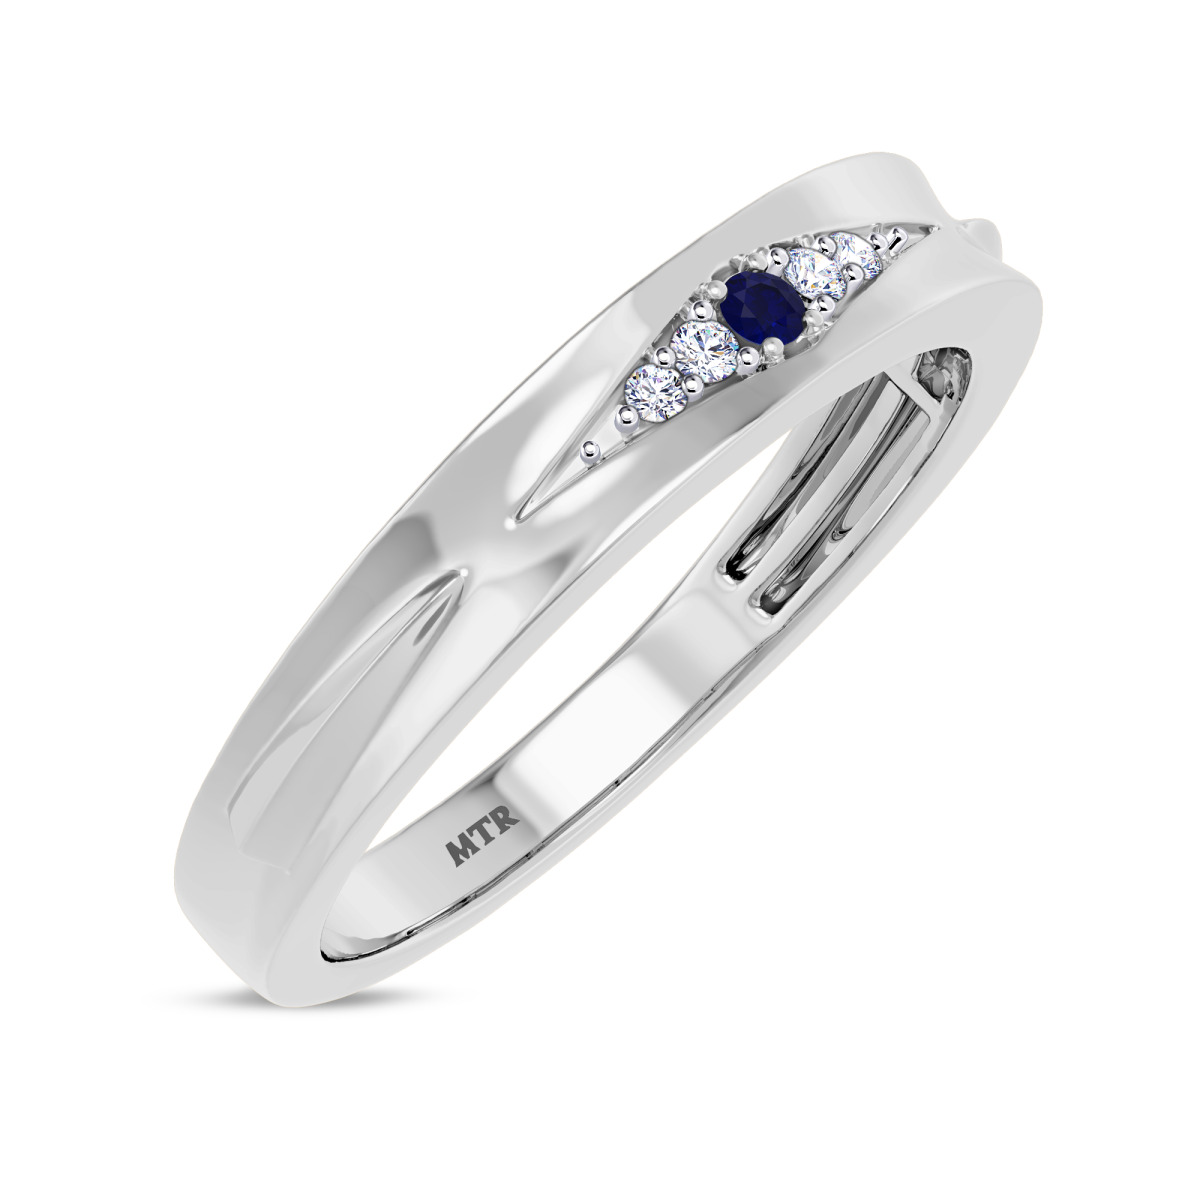 1/10 Carat T.W. Sapphire Mens Wedding Band 14K White Gold